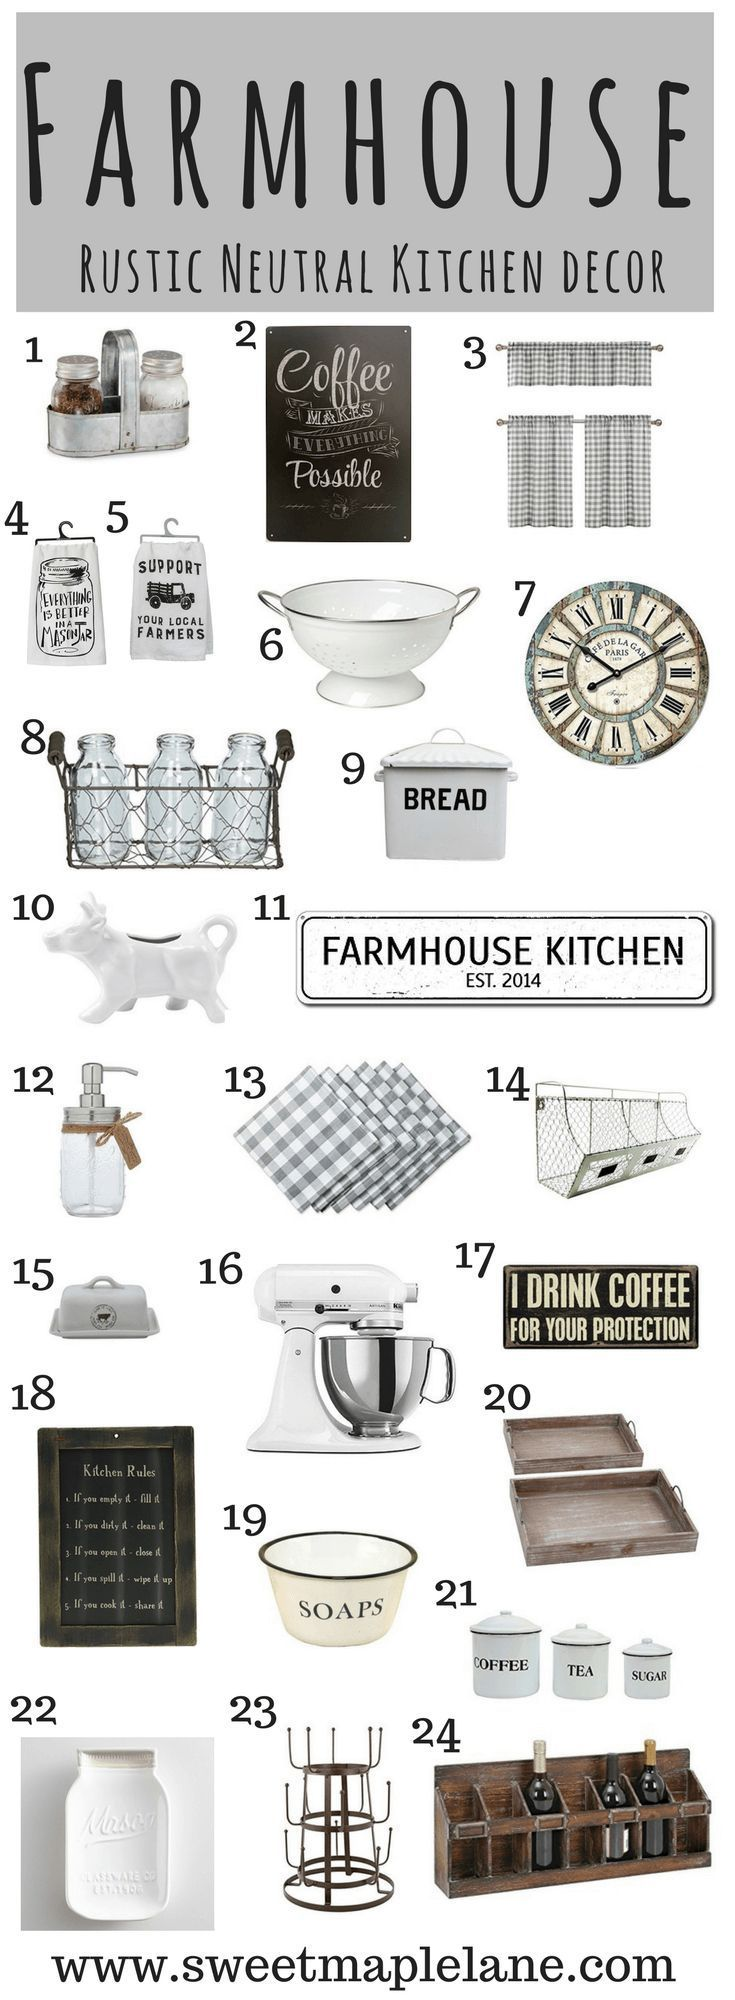 best 25 kitchen decor signs ideas on pinterest kitchen signs rustic neutral farmhouse kitchen decor